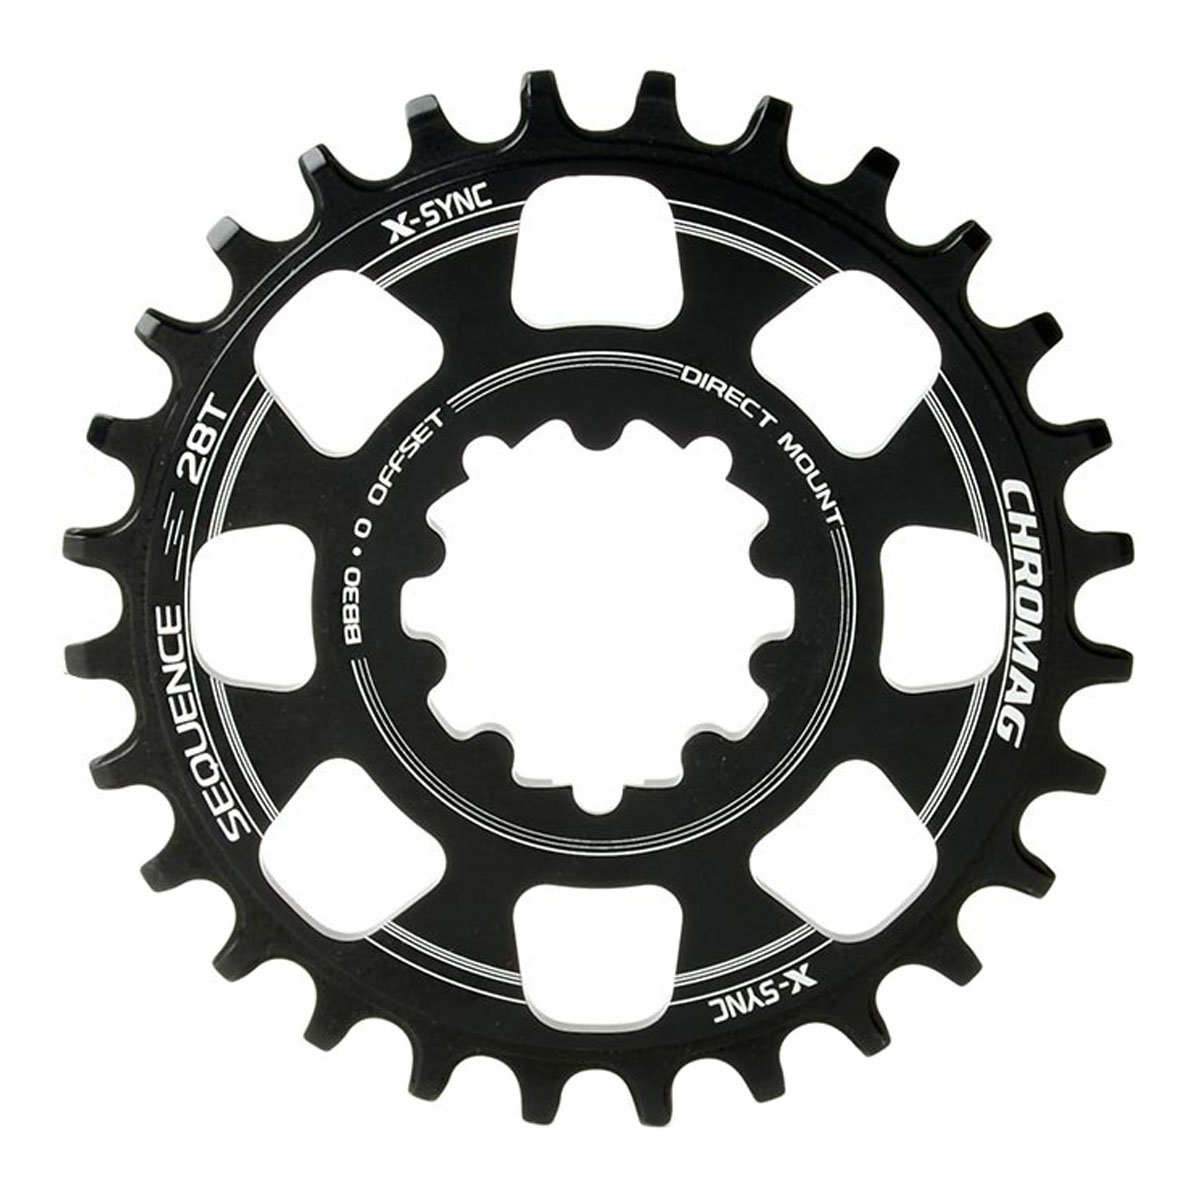 Chromag、Sequence Boost、28t Chainring、9 – 11sp、BCD : 104、7075アルミニウム、ブラック B076ZH4GJC